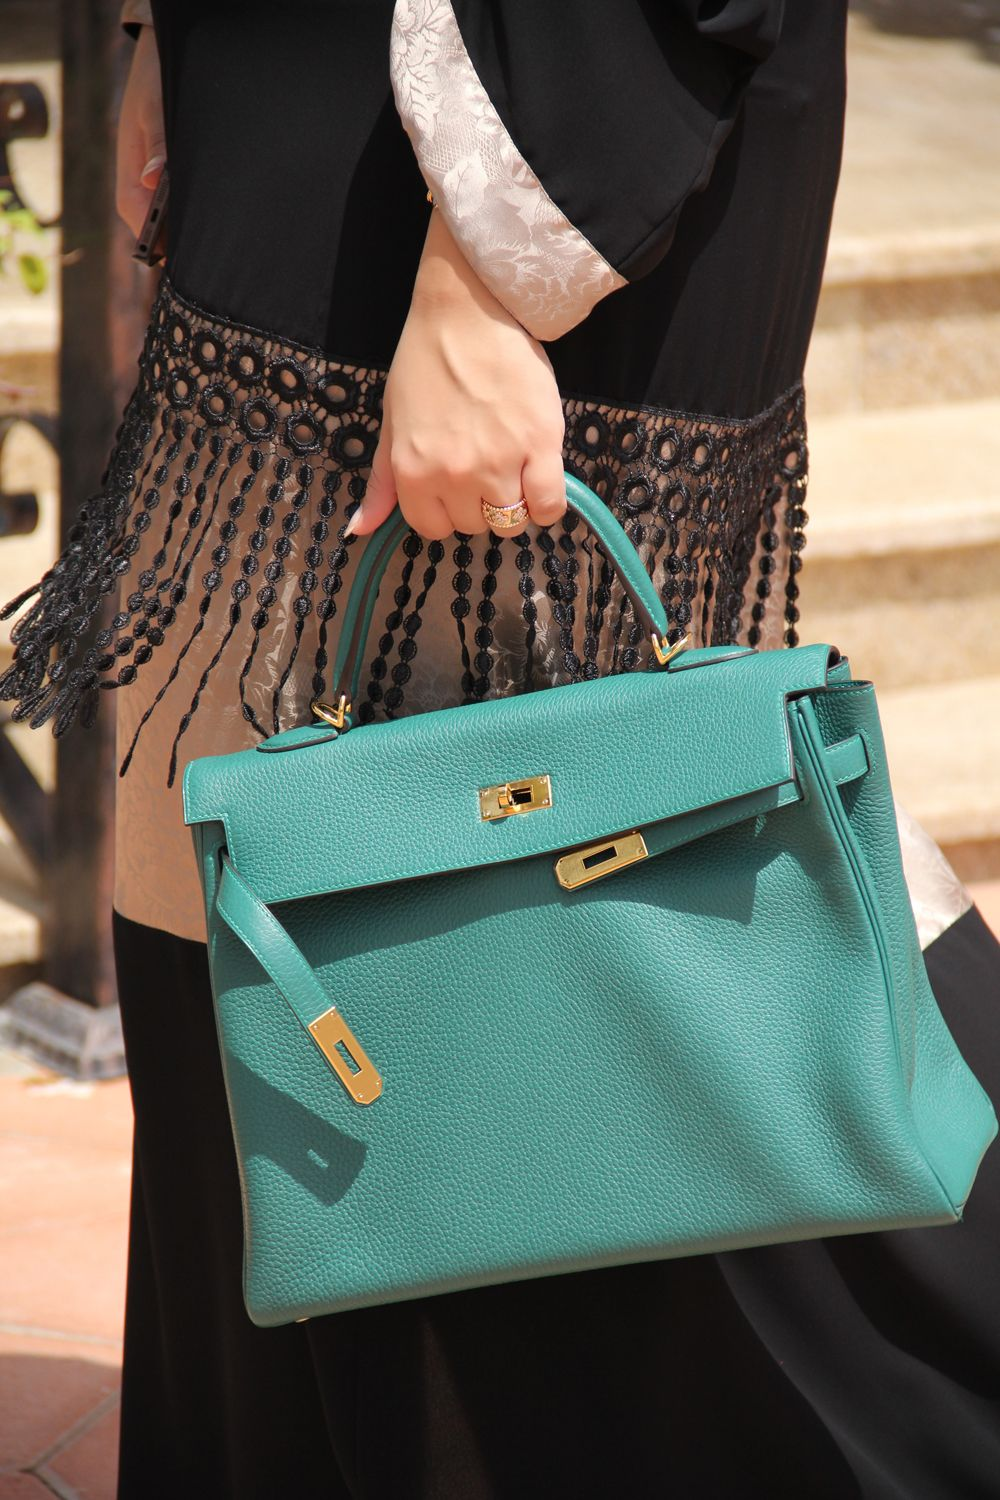 92a6a1497e9b Hermes Kelly bag in Malachite Green